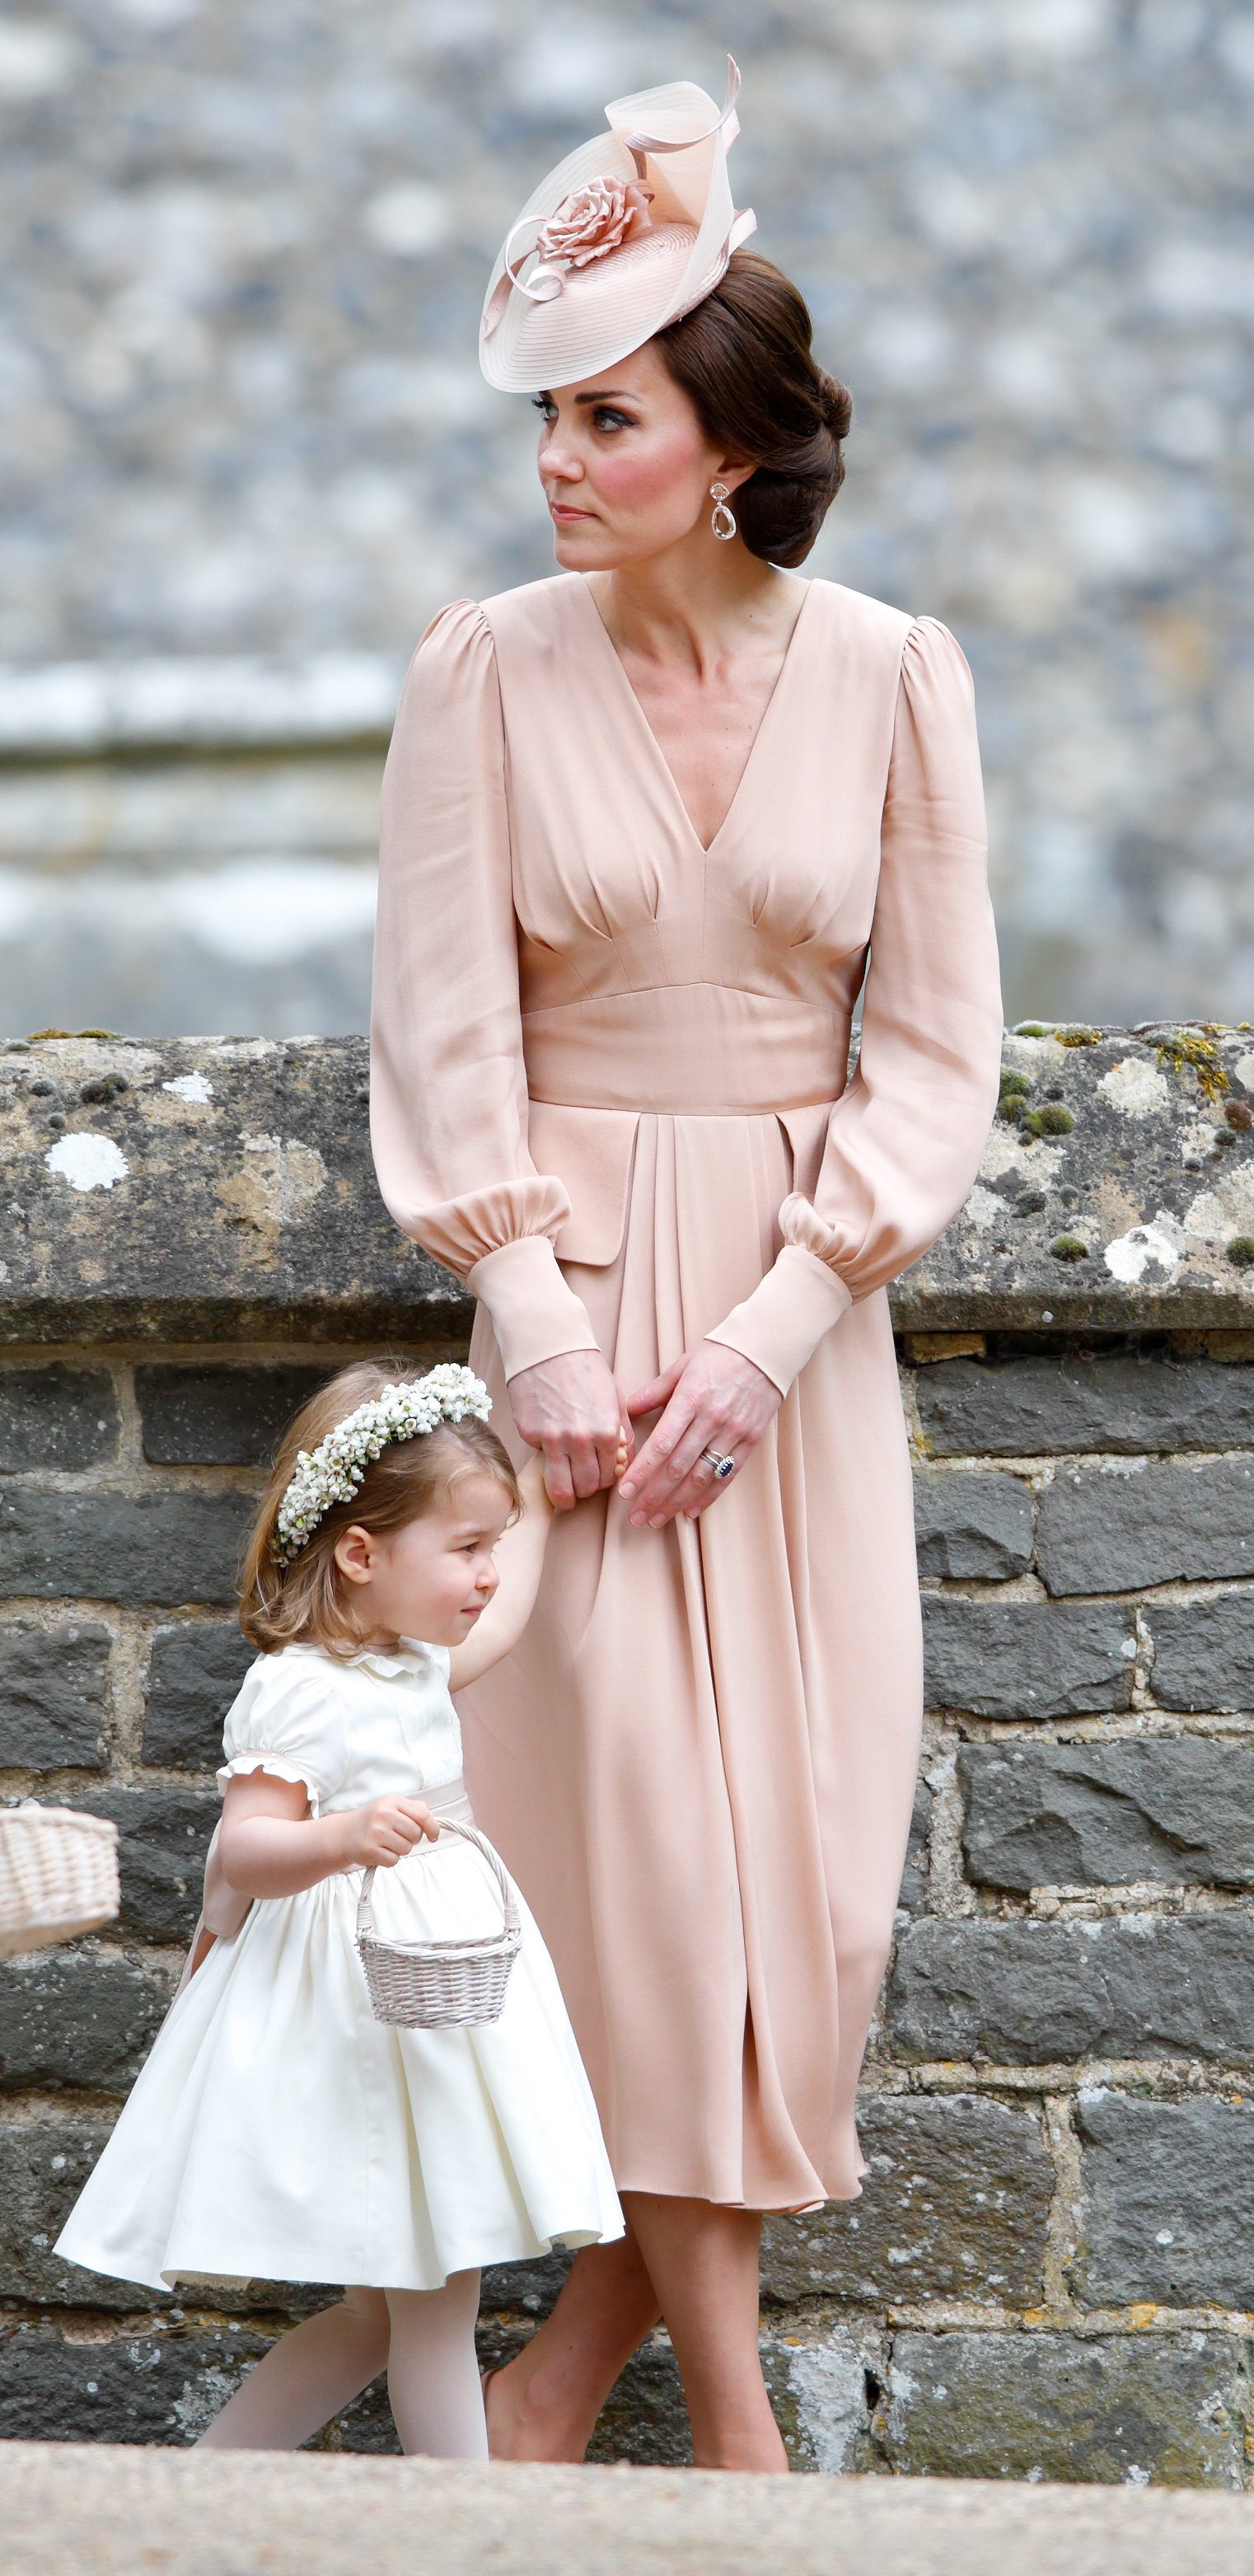 ENGLEFIELD GREEN, UNITED KINGDOM - MAY 20: (EMBARGOED FOR PUBLICATION IN UK NEWSPAPERS UNTIL 48 HOURS AFTER CREATE DATE AND TIME) Catherine, Duchess of Cambridge and Princess Charlotte of Cambridge attend the wedding of Pippa Middleton and James Matthews at St Mark's Church on May 20, 2017 in Englefield Green, England. (Photo by Max Mumby/Indigo/Getty Images)